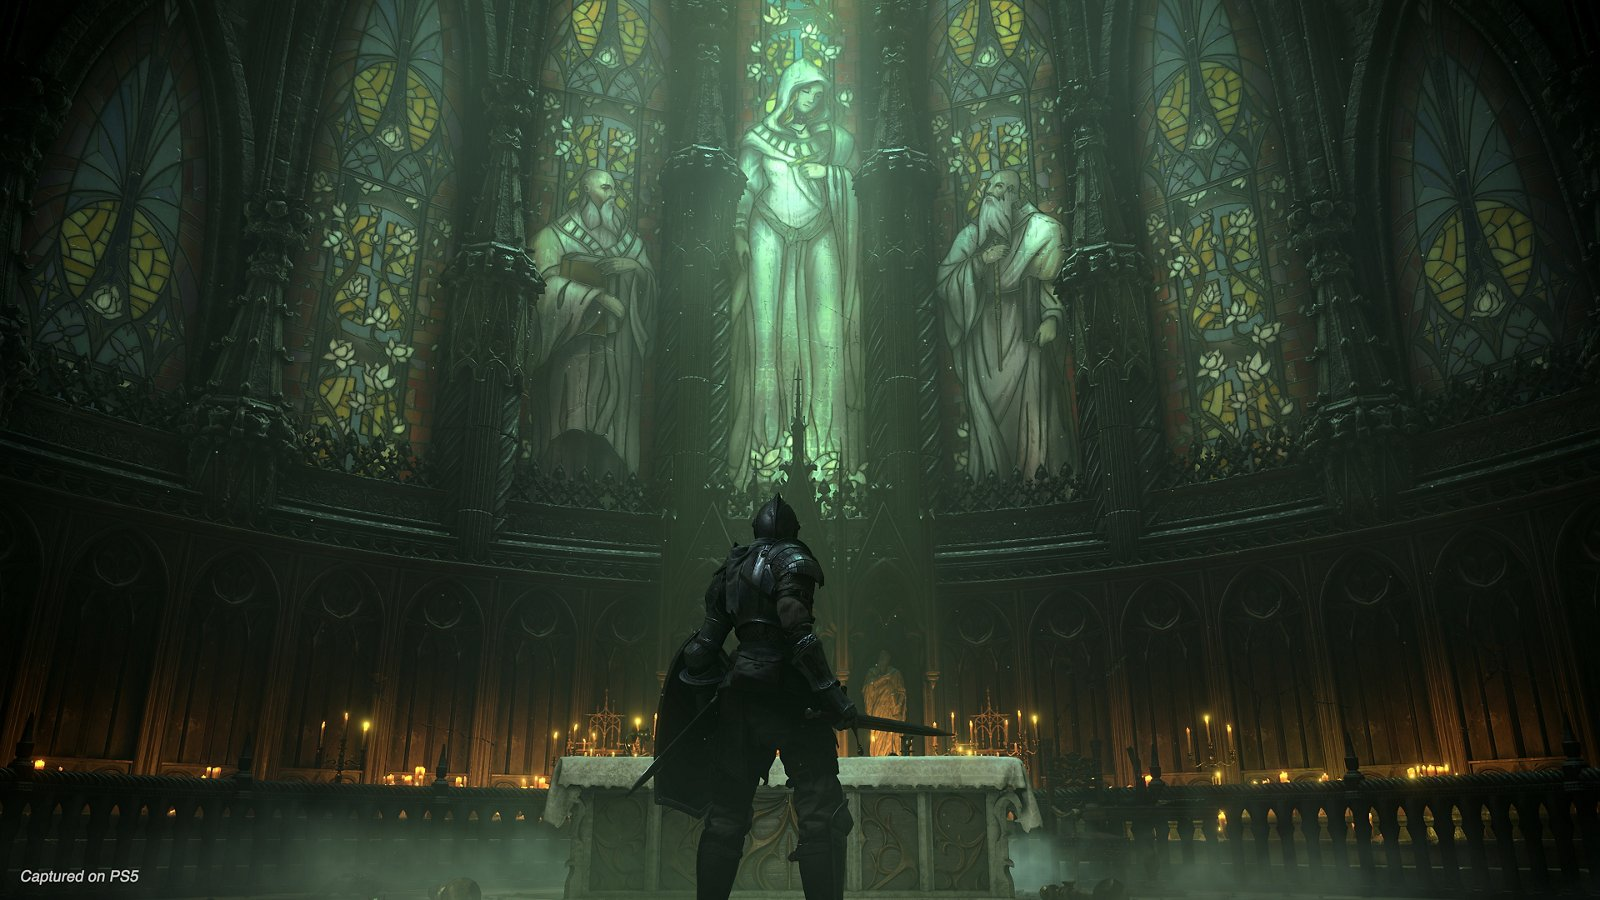 Sony acquires Bluepoint Games, developer of PS5 Demon's Souls remake